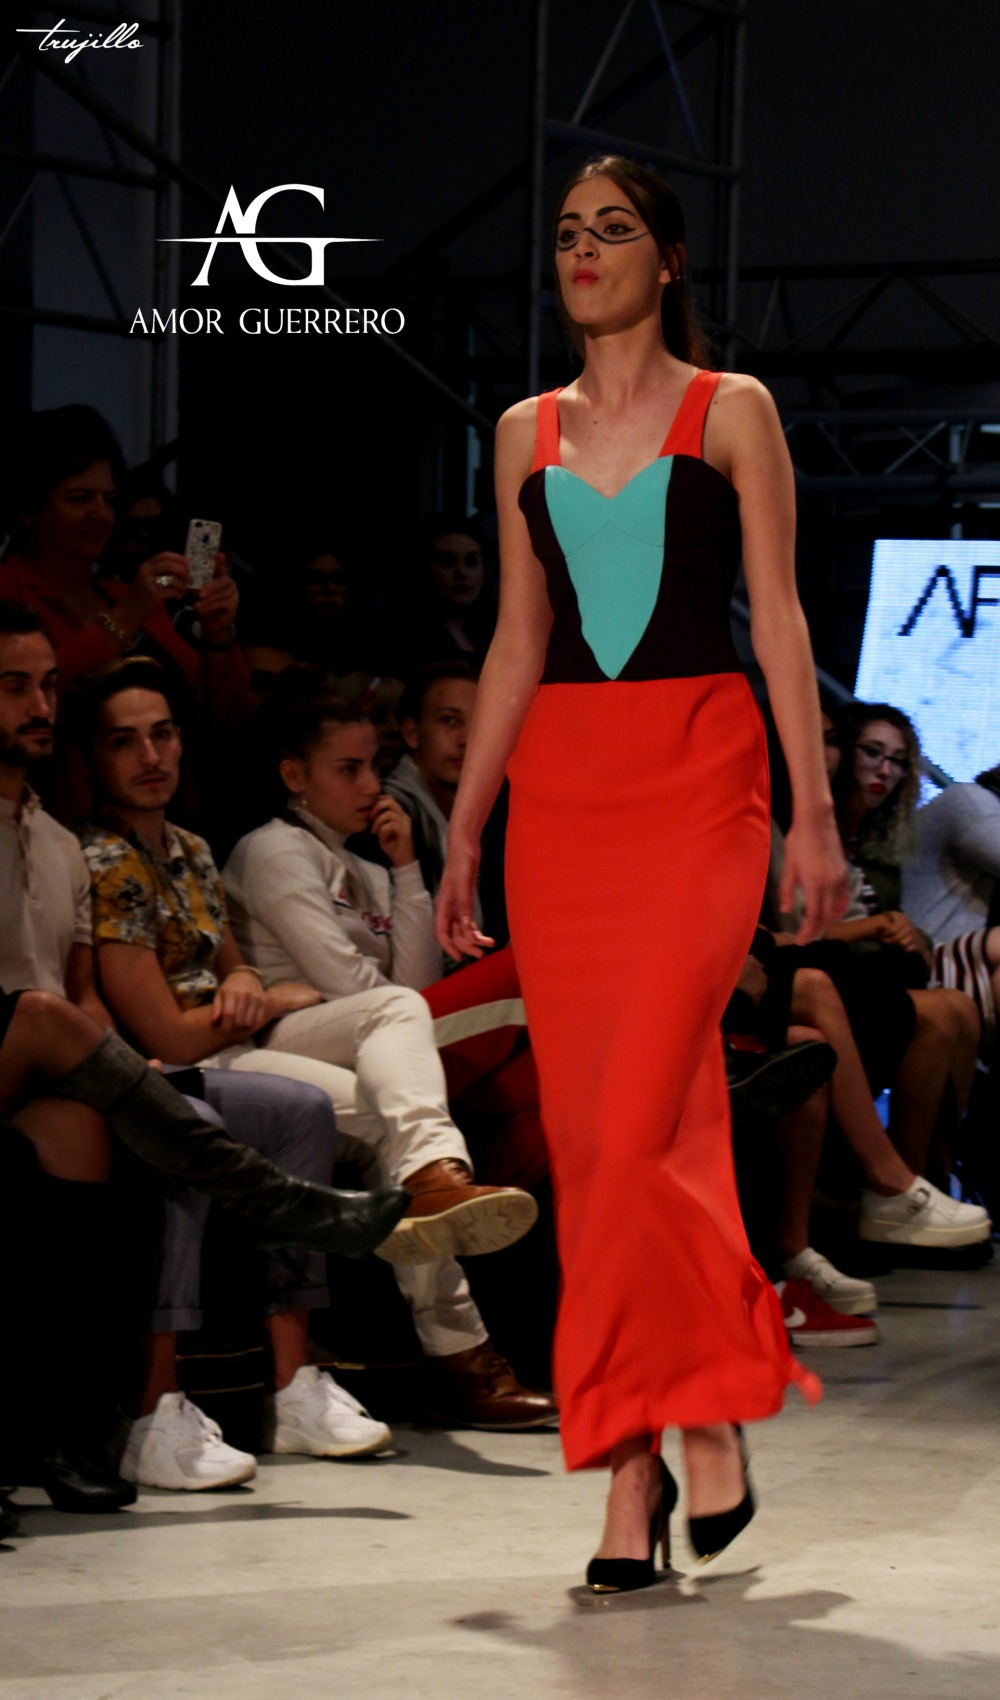 Amor Guerrerro / Alicante Fashion Week